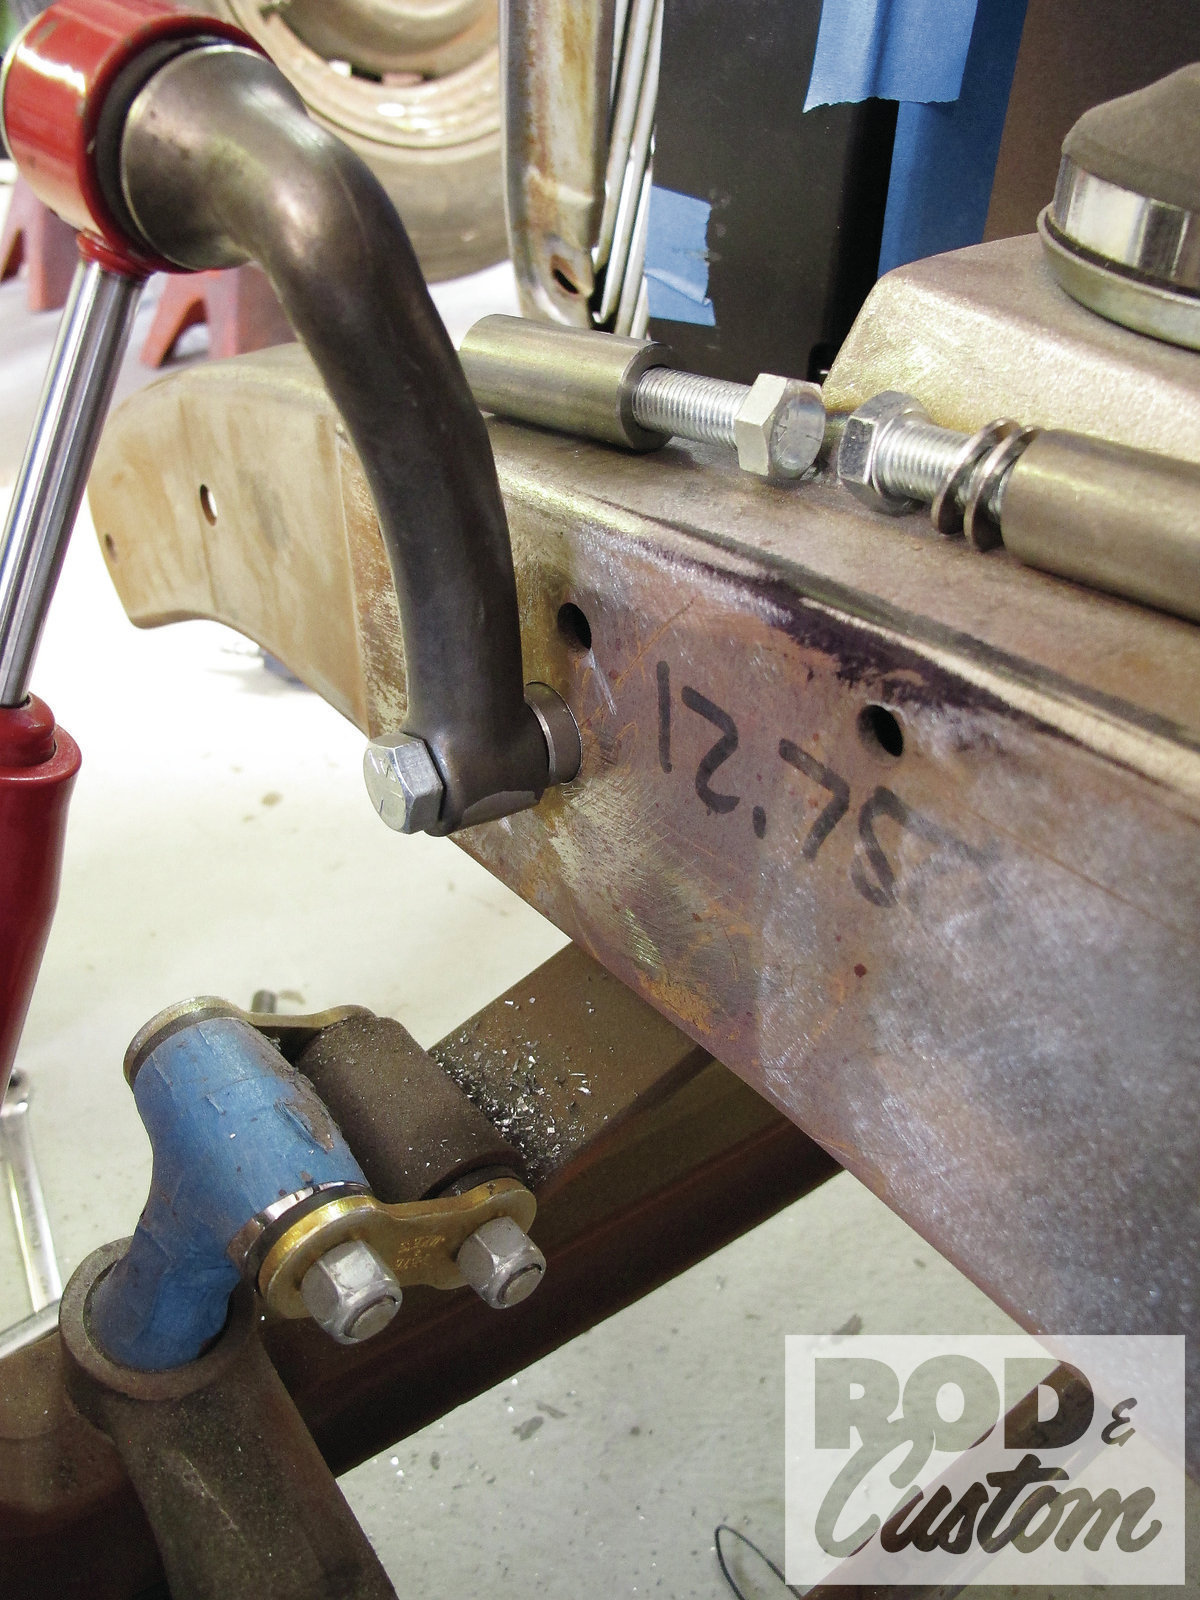 9. Starting with a pilot guide, White followed by using a Rotobroach with a pneumatic drill. The upper bung only requires drilling one hole; however, we may copy the lower later on by swapping for a longer bung that gets welded on both sides of the framerail.